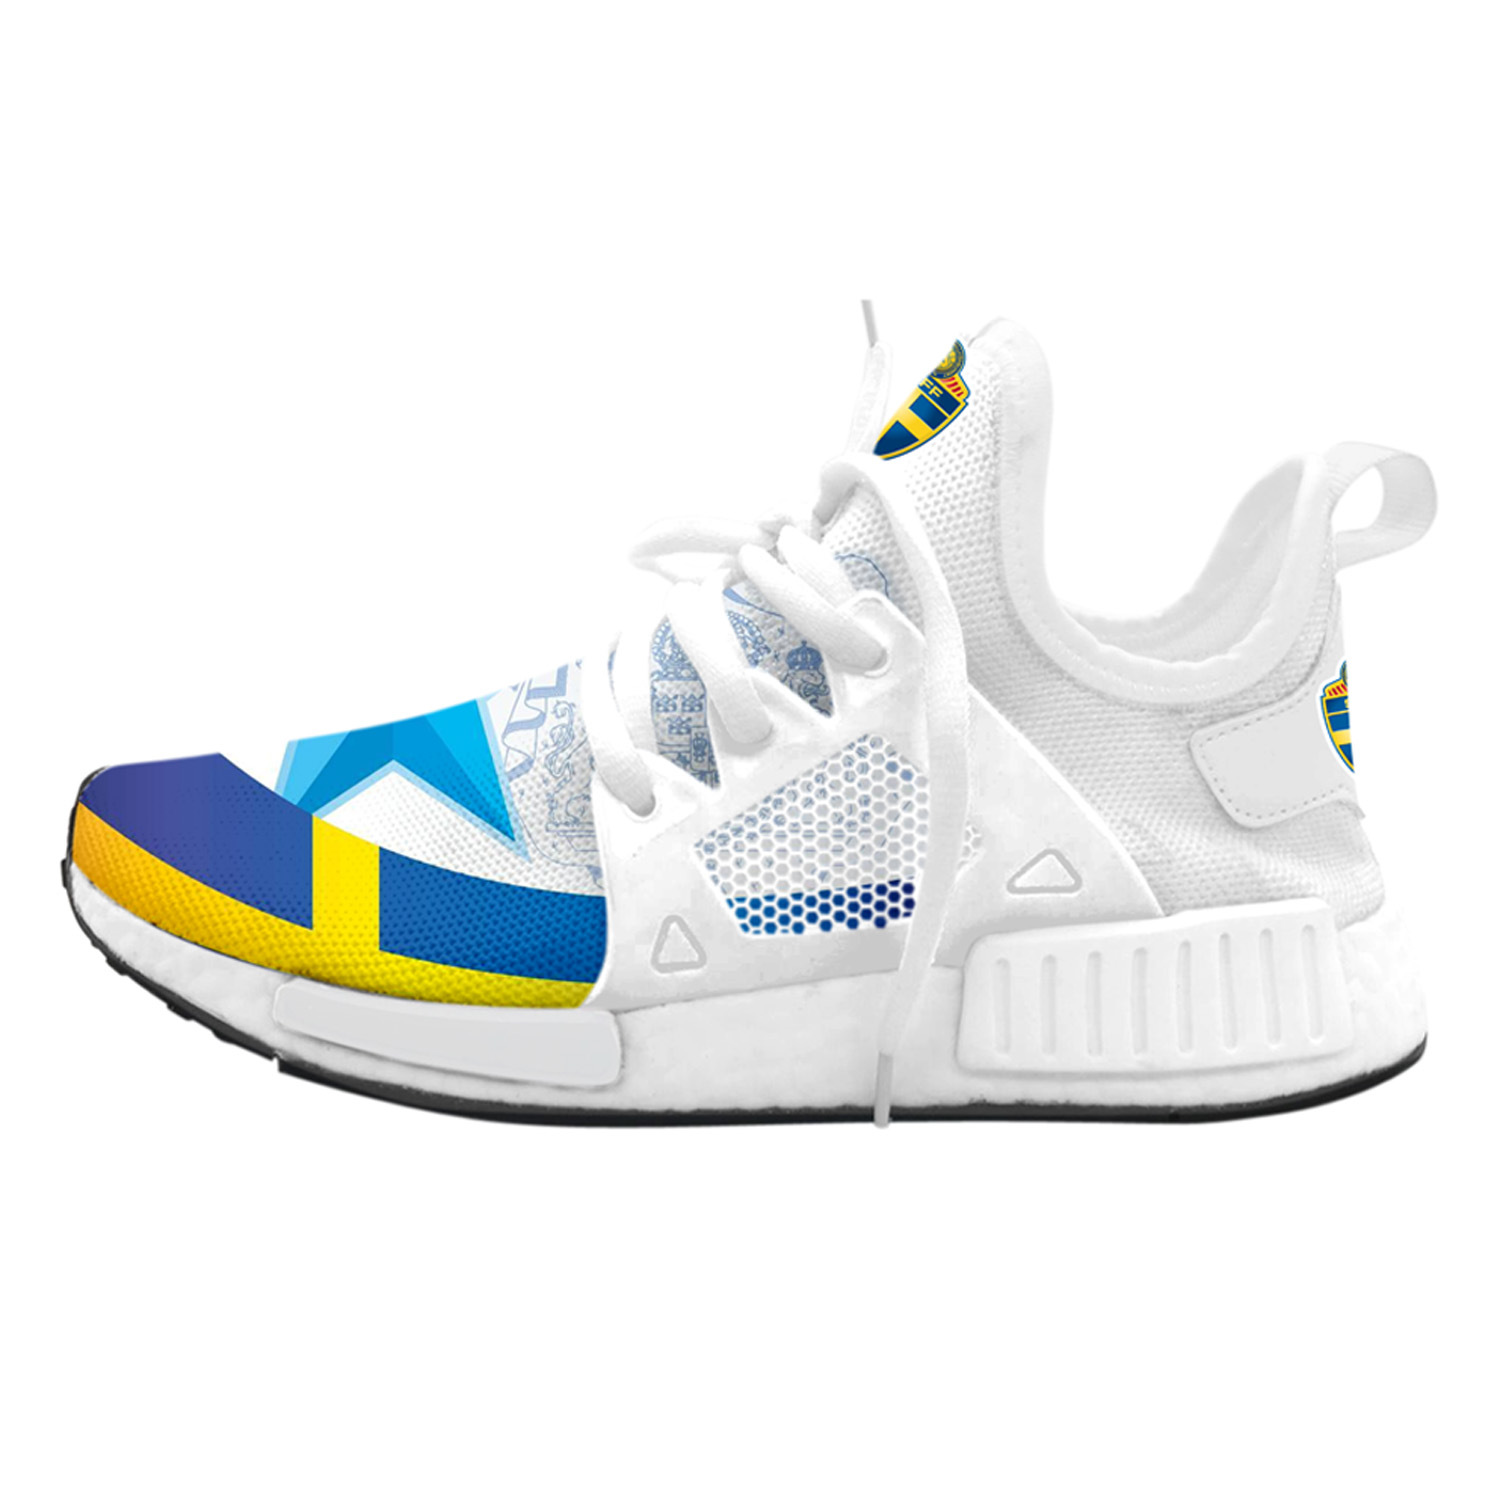 Place to Buy Sports Nmd Shoes Online